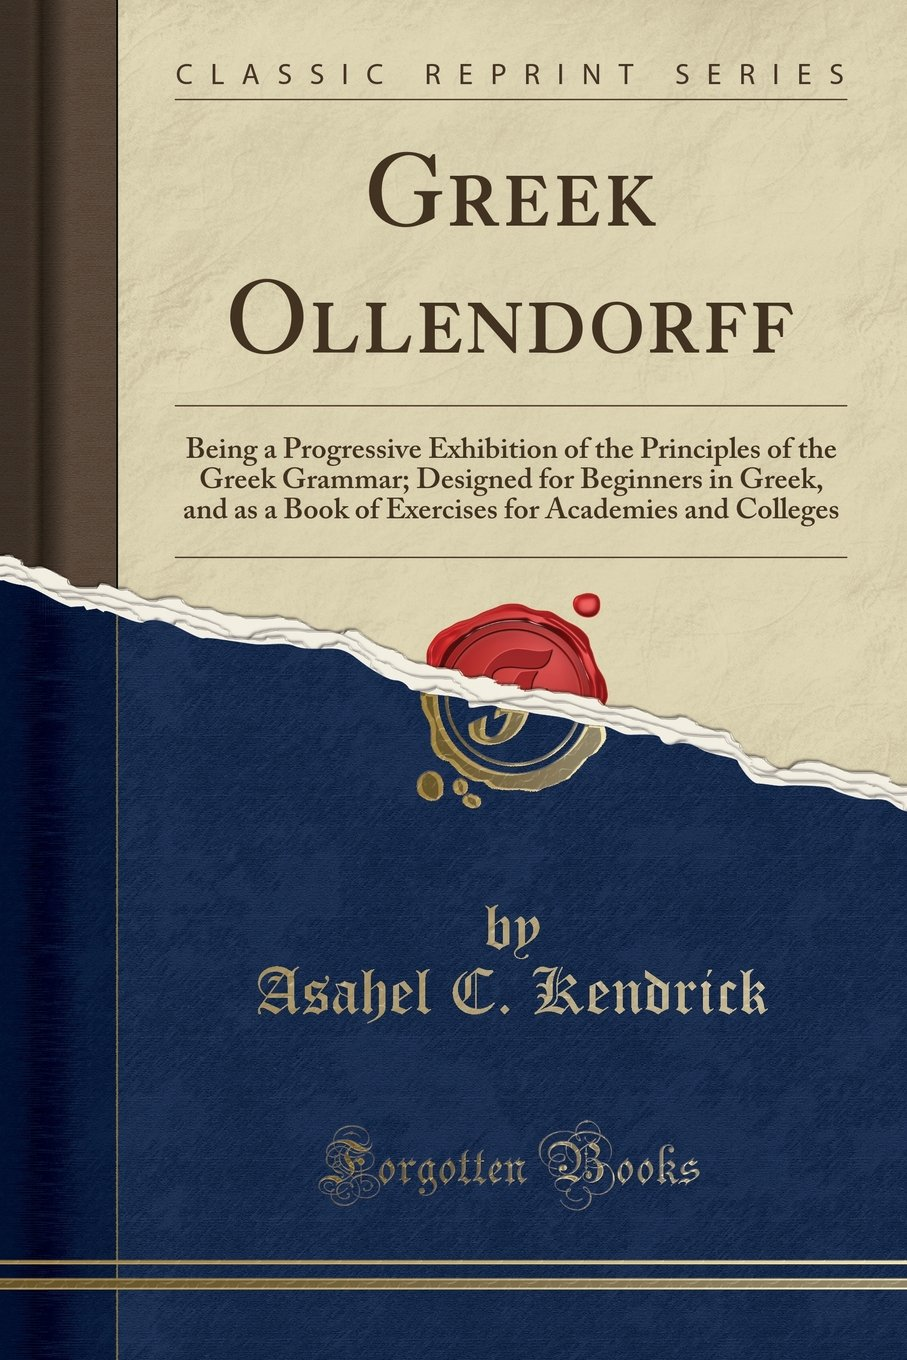 Greek Ollendorff: Being a Progressive Exhibition of the Principles of the Greek Grammar; Designed for Beginners in Greek, and as a Book of Exercises for Academies and Colleges (Classic Reprint) pdf